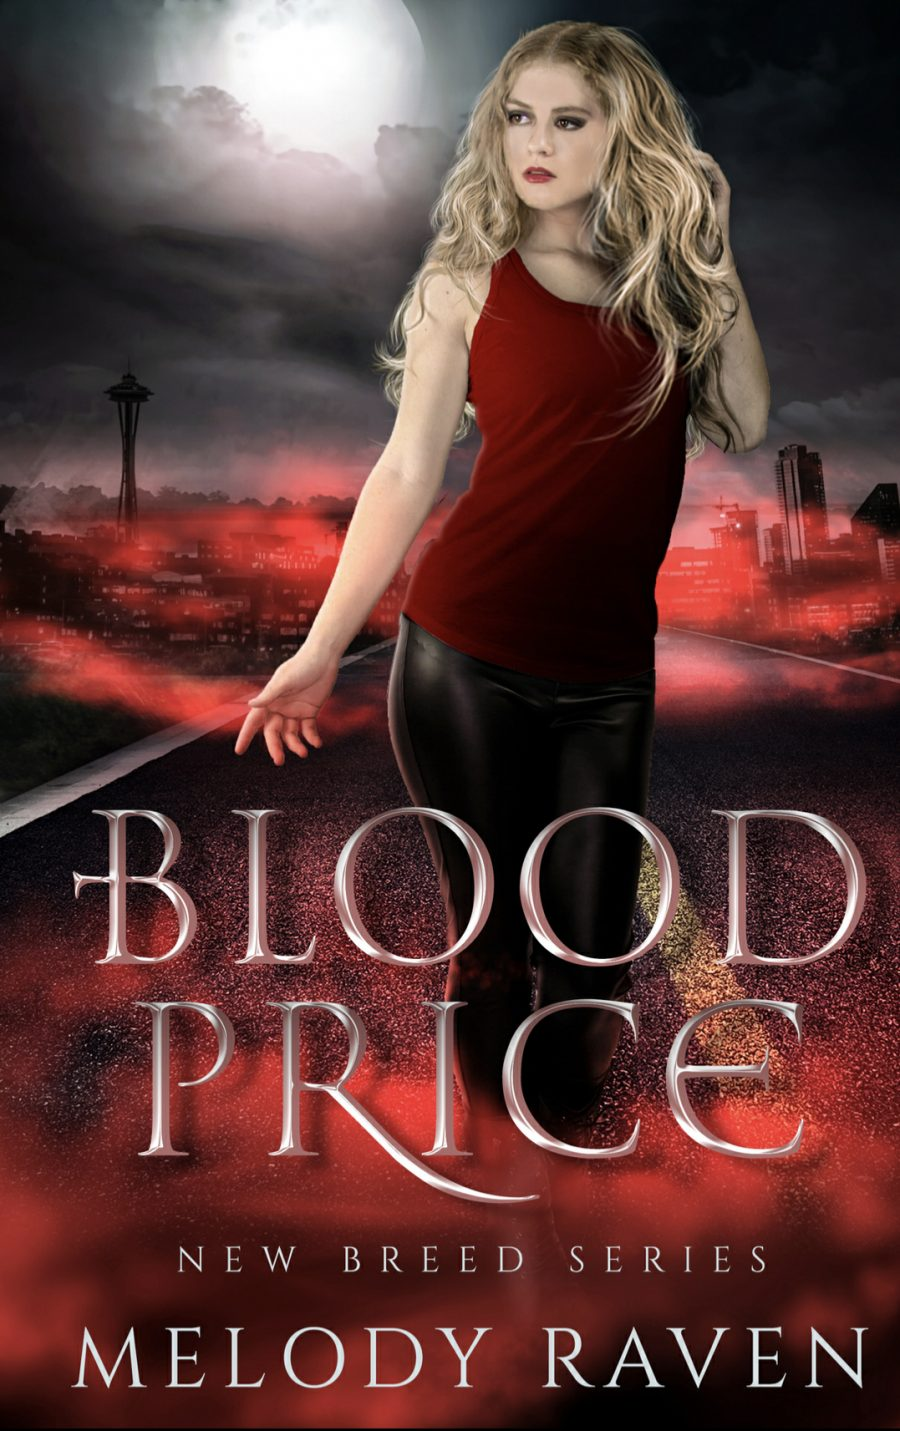 Blood Price by Melody Raven - A Book Review #BookReview #PNR #Vampire #Romance #Invasion #StandAloneWithinSeries #4star #KindleUnlimited #KU